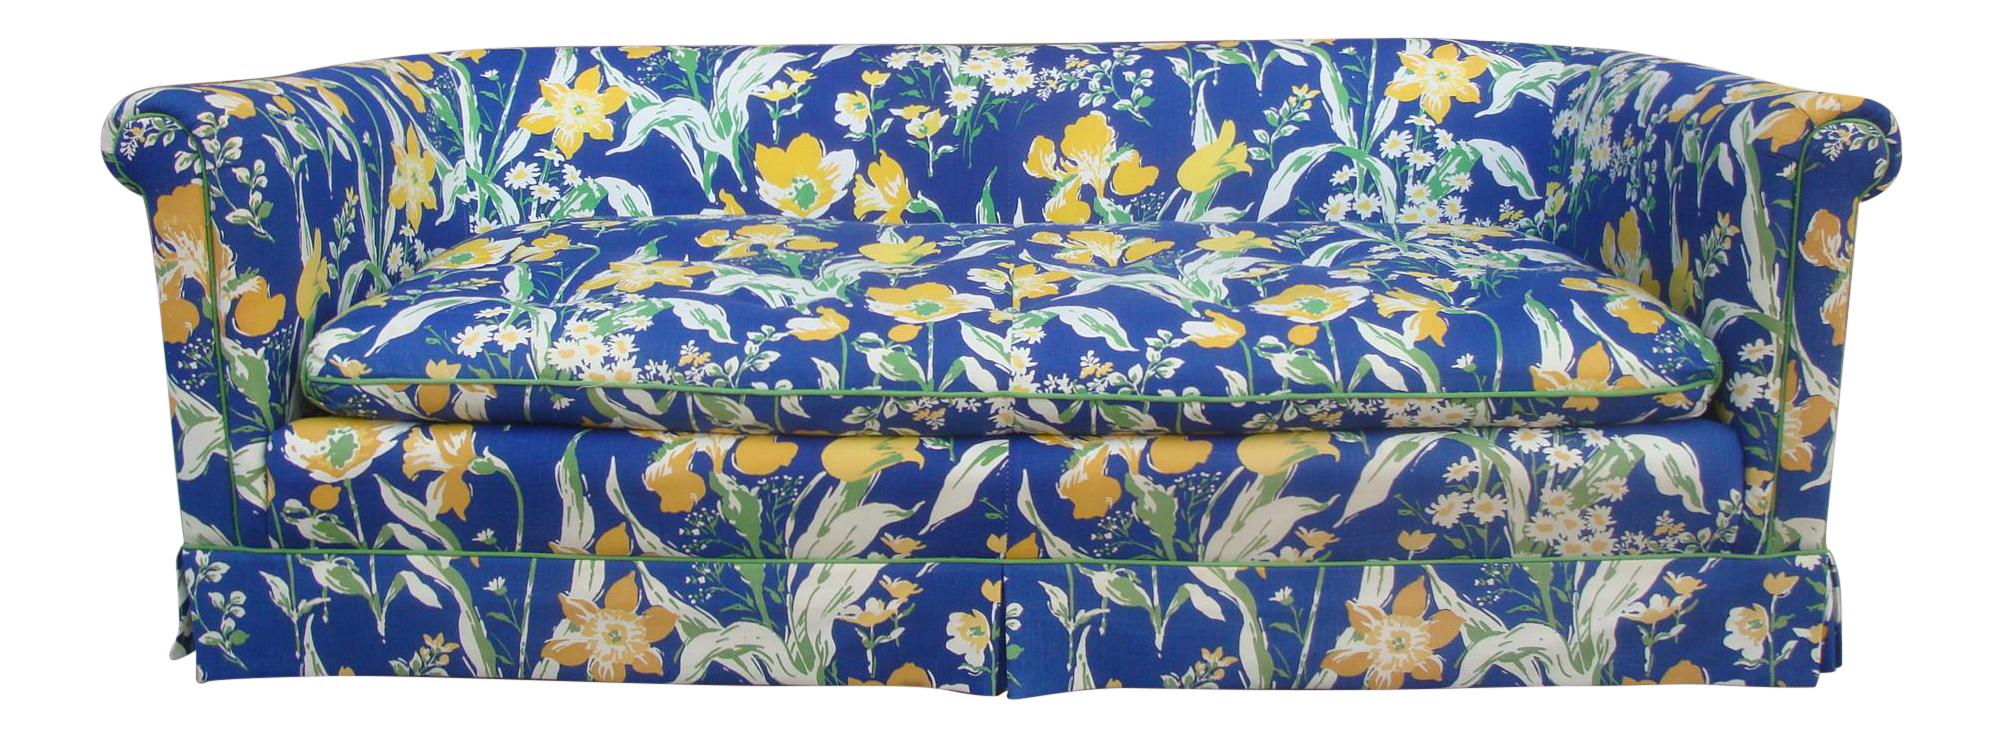 1970s Blue Amp Yellow Floral Sofa By Highland House Of